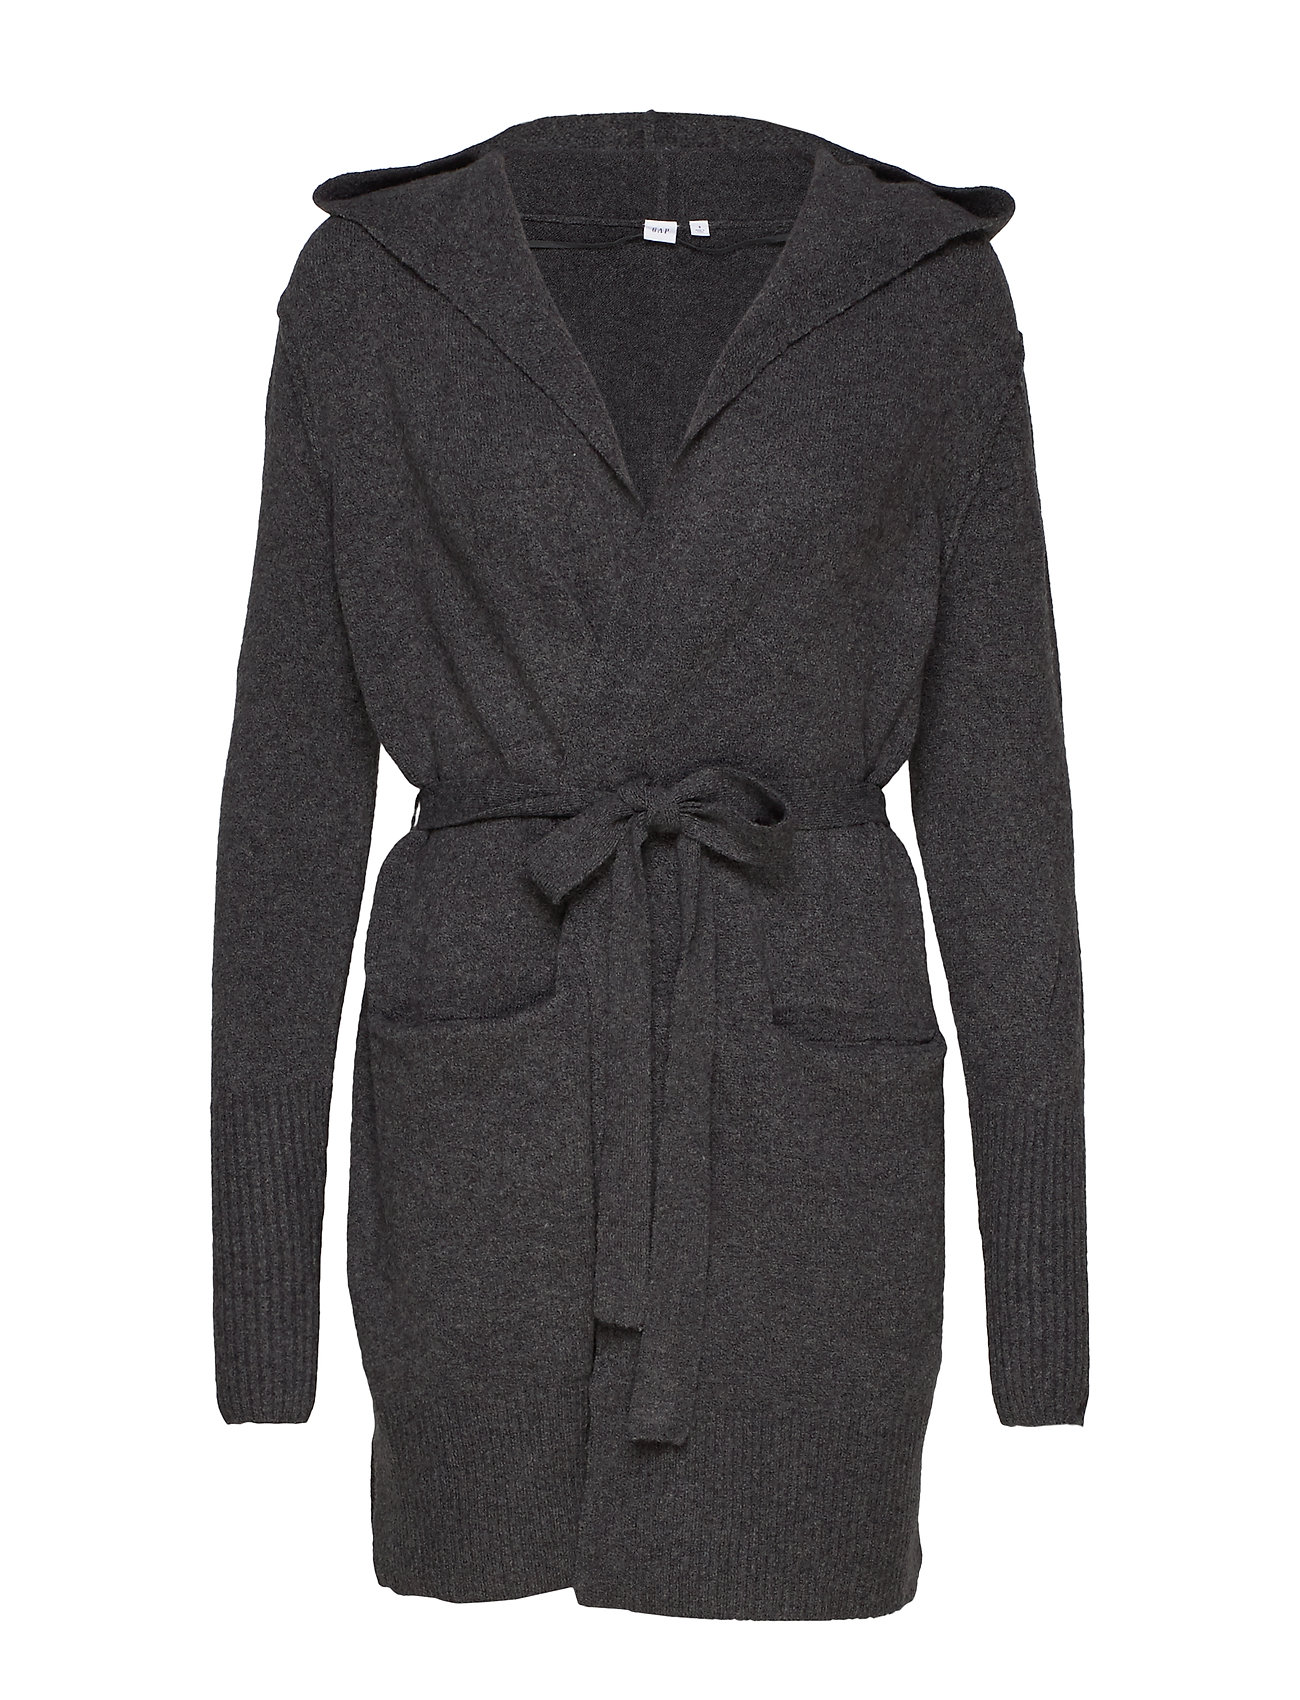 GAP Boucle Longline Hooded Cardigan Sweater - CHARCOAL HEATHER